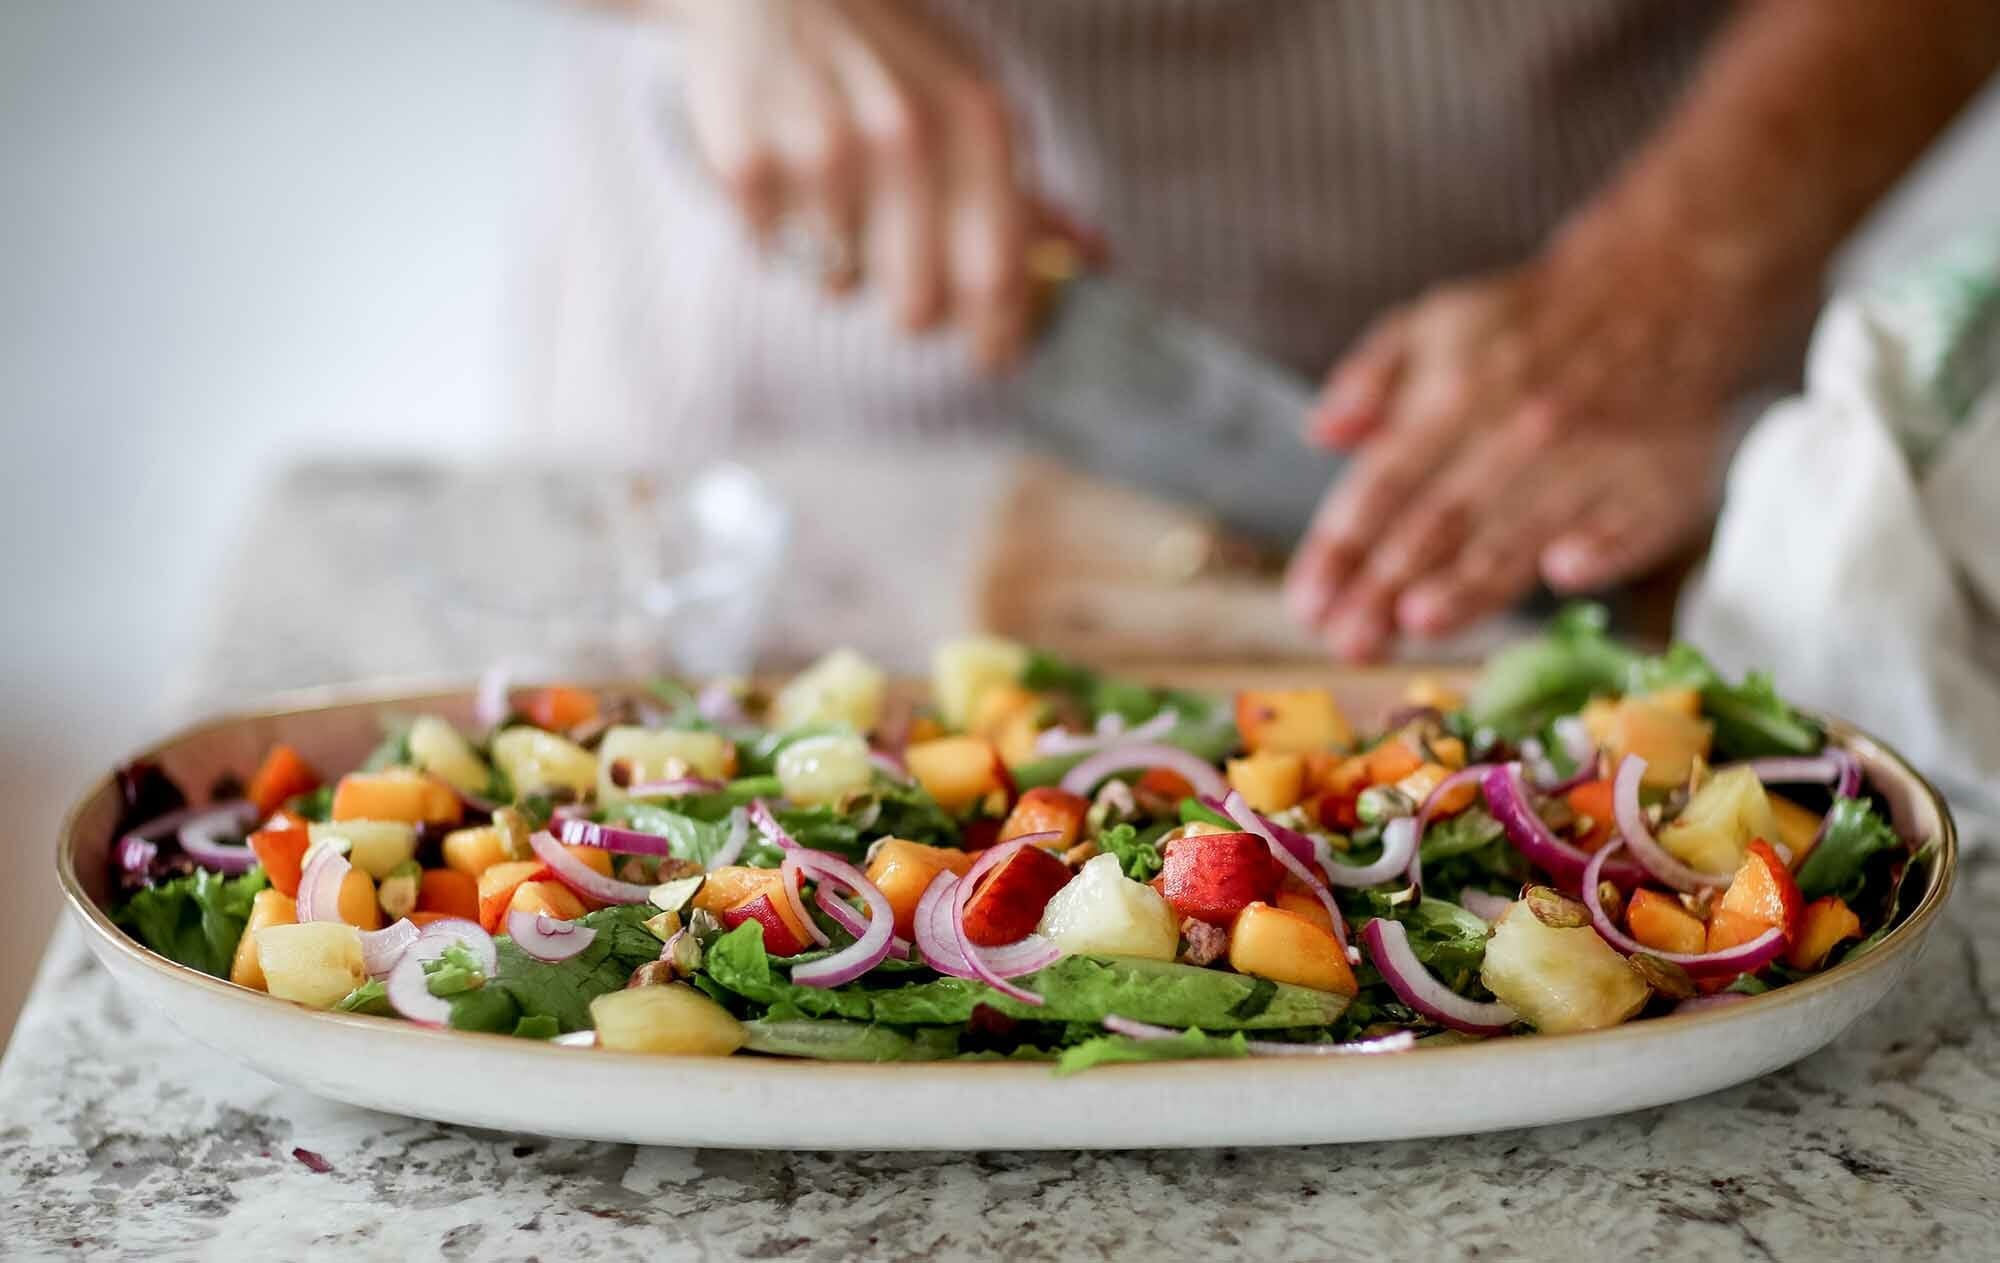 Side salad recipe with peaches, goat cheese, and pistachios